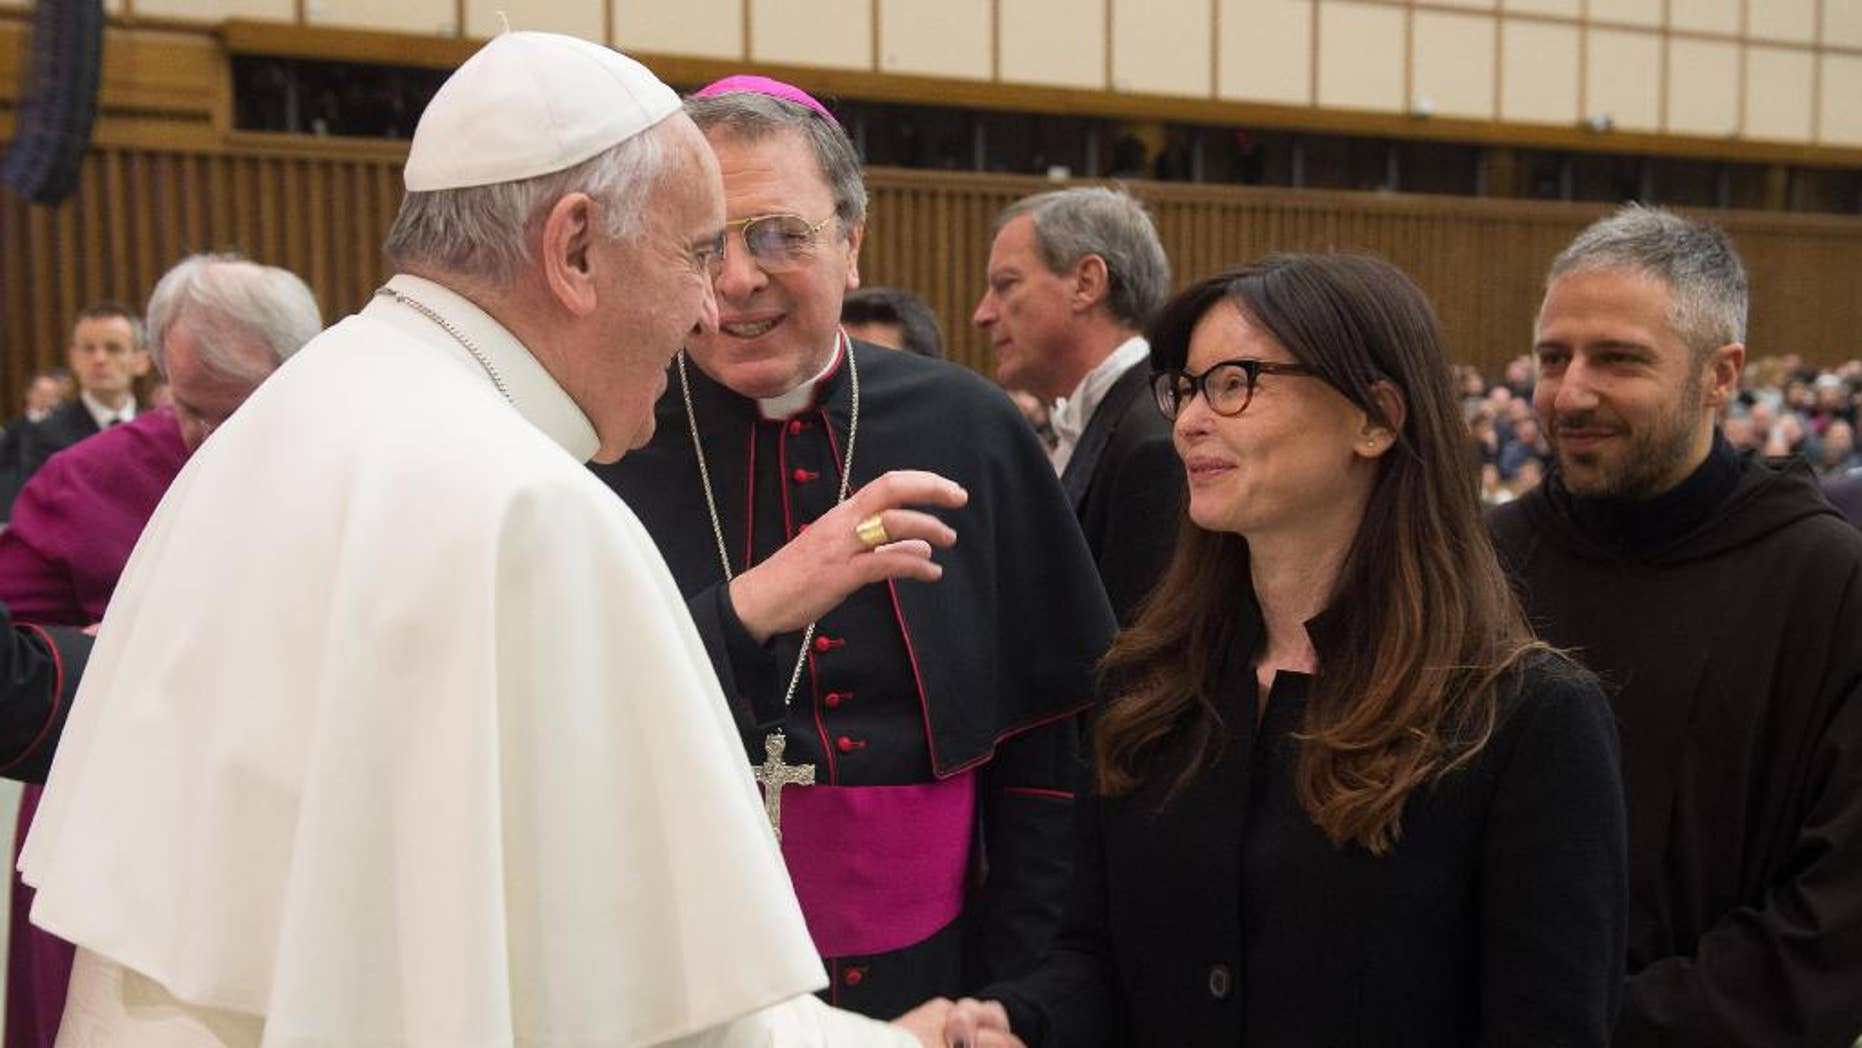 FILE -- In this file photo taken at the Vatican, on Feb. 4, 2015, Pope Francis shakes hands with Italian lawyer Lucia Annibali during the weekly general audience in the Pope Paul VI hall, . Annibali, became a symbol in the fight against men's violence toward women, after suffering in the 2013 an acid attack masterminded by her ex-boyfriend Luca Varani, also a lawyer. Varani has been convicted and sentenced to 20 years in prison for ordering the attack on his ex-girlfriend. Two Albanian men were convicted of throwing the acid and each received a 14 year term. On saturday in a speech, Francis decried disfiguring attacks on women. (AP Photo/L'Osservatore Romano, Pool)